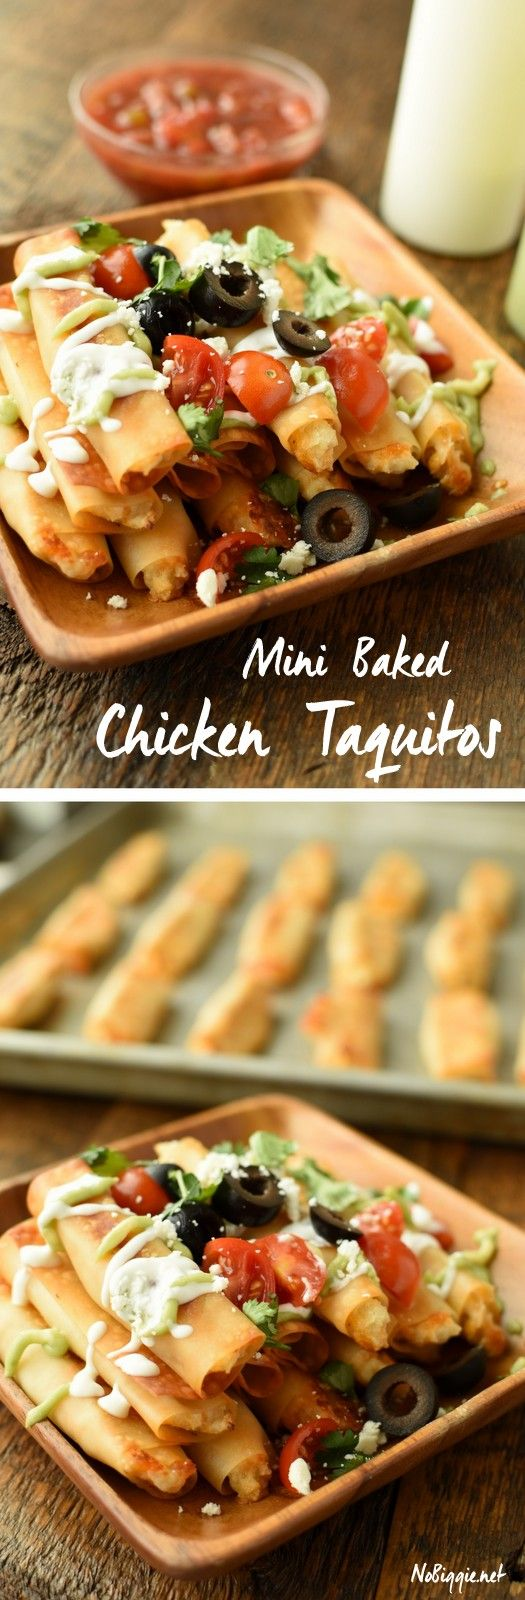 Mini Baked Chicken Taquitos - made with wonton wrappers these are so fast and easy! Watch the video! | NoBiggie.net via @nobiggie